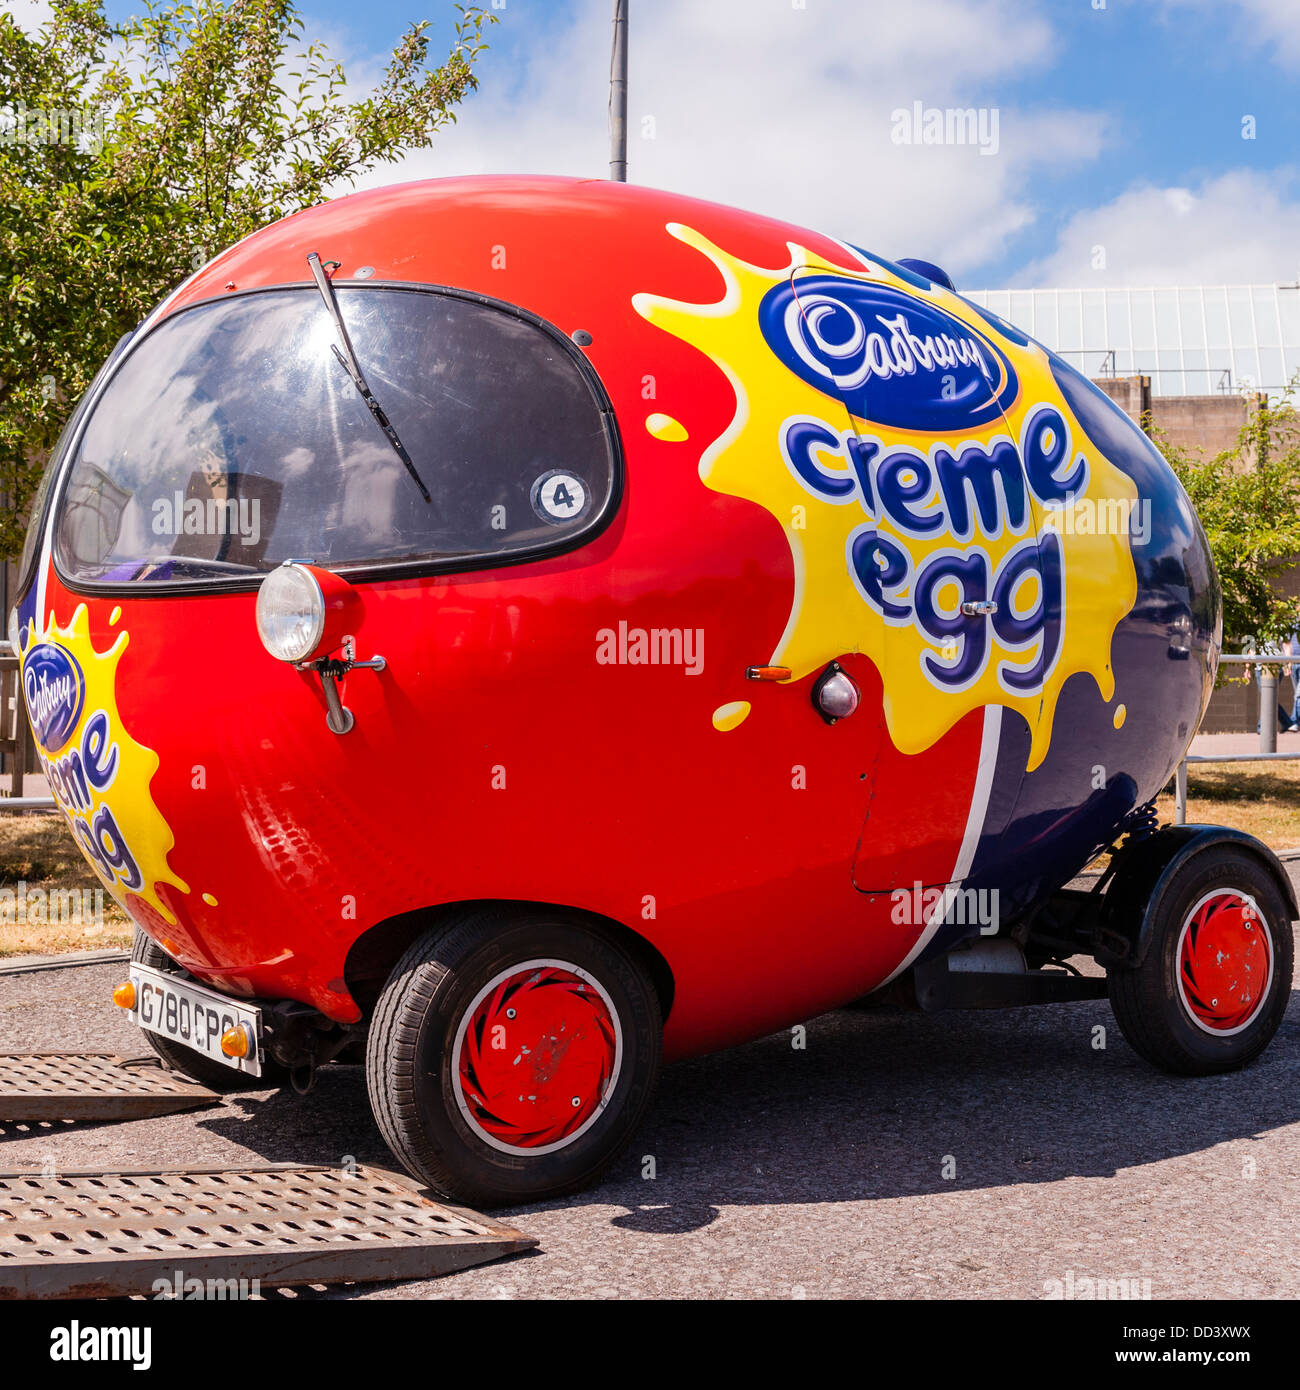 The Cadbury Creme Egg Car At The National Motor Museum At